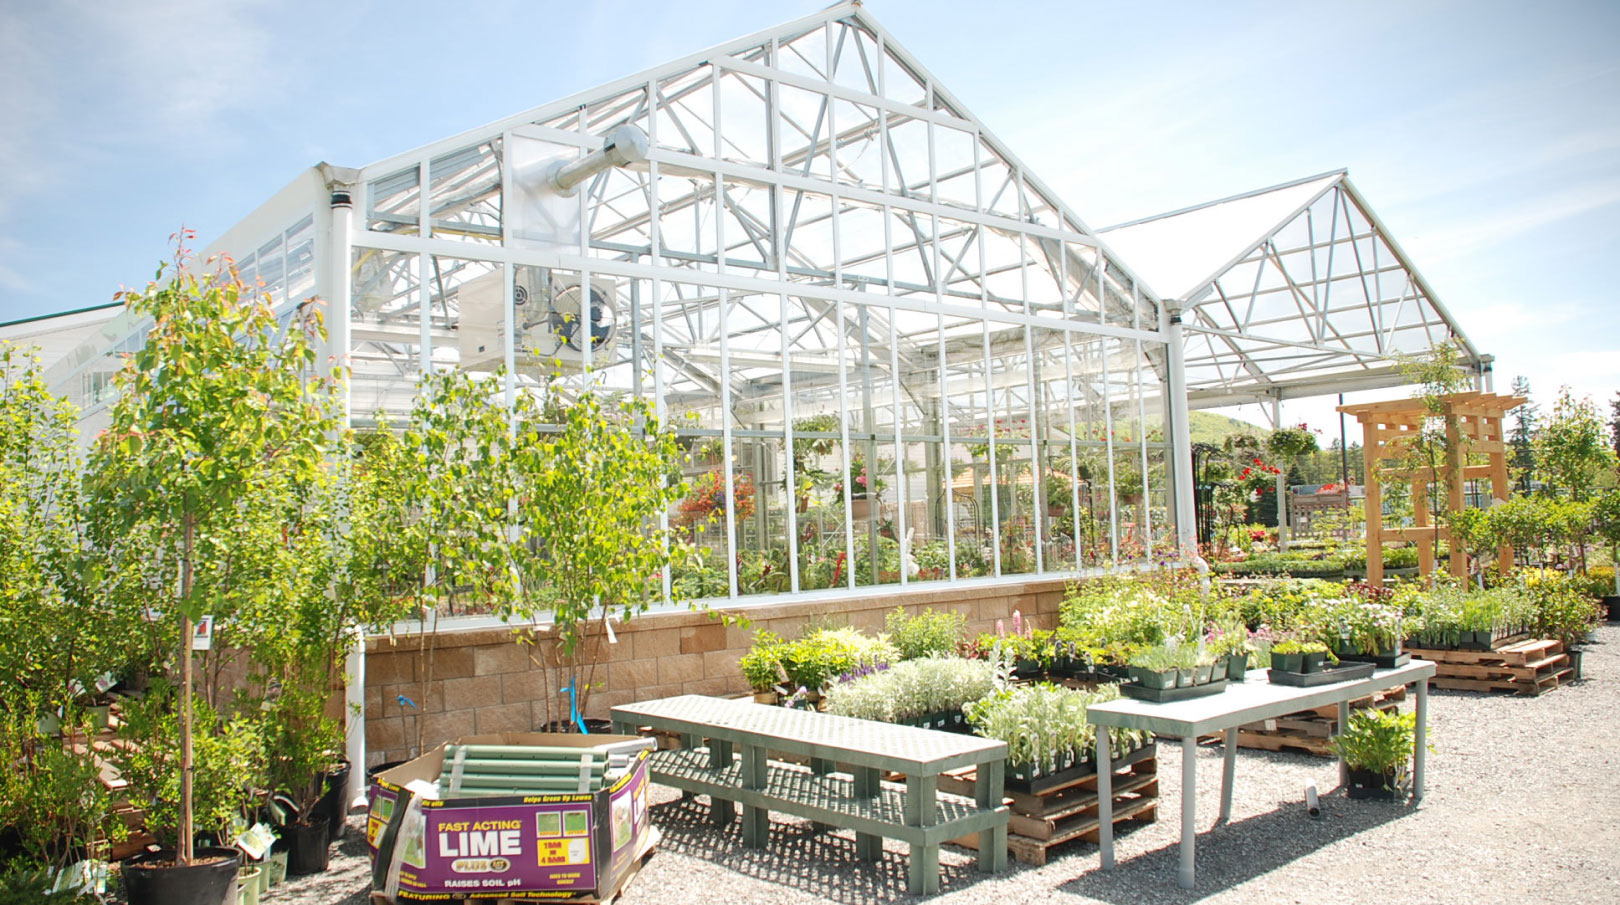 A Rimol Greenhouse